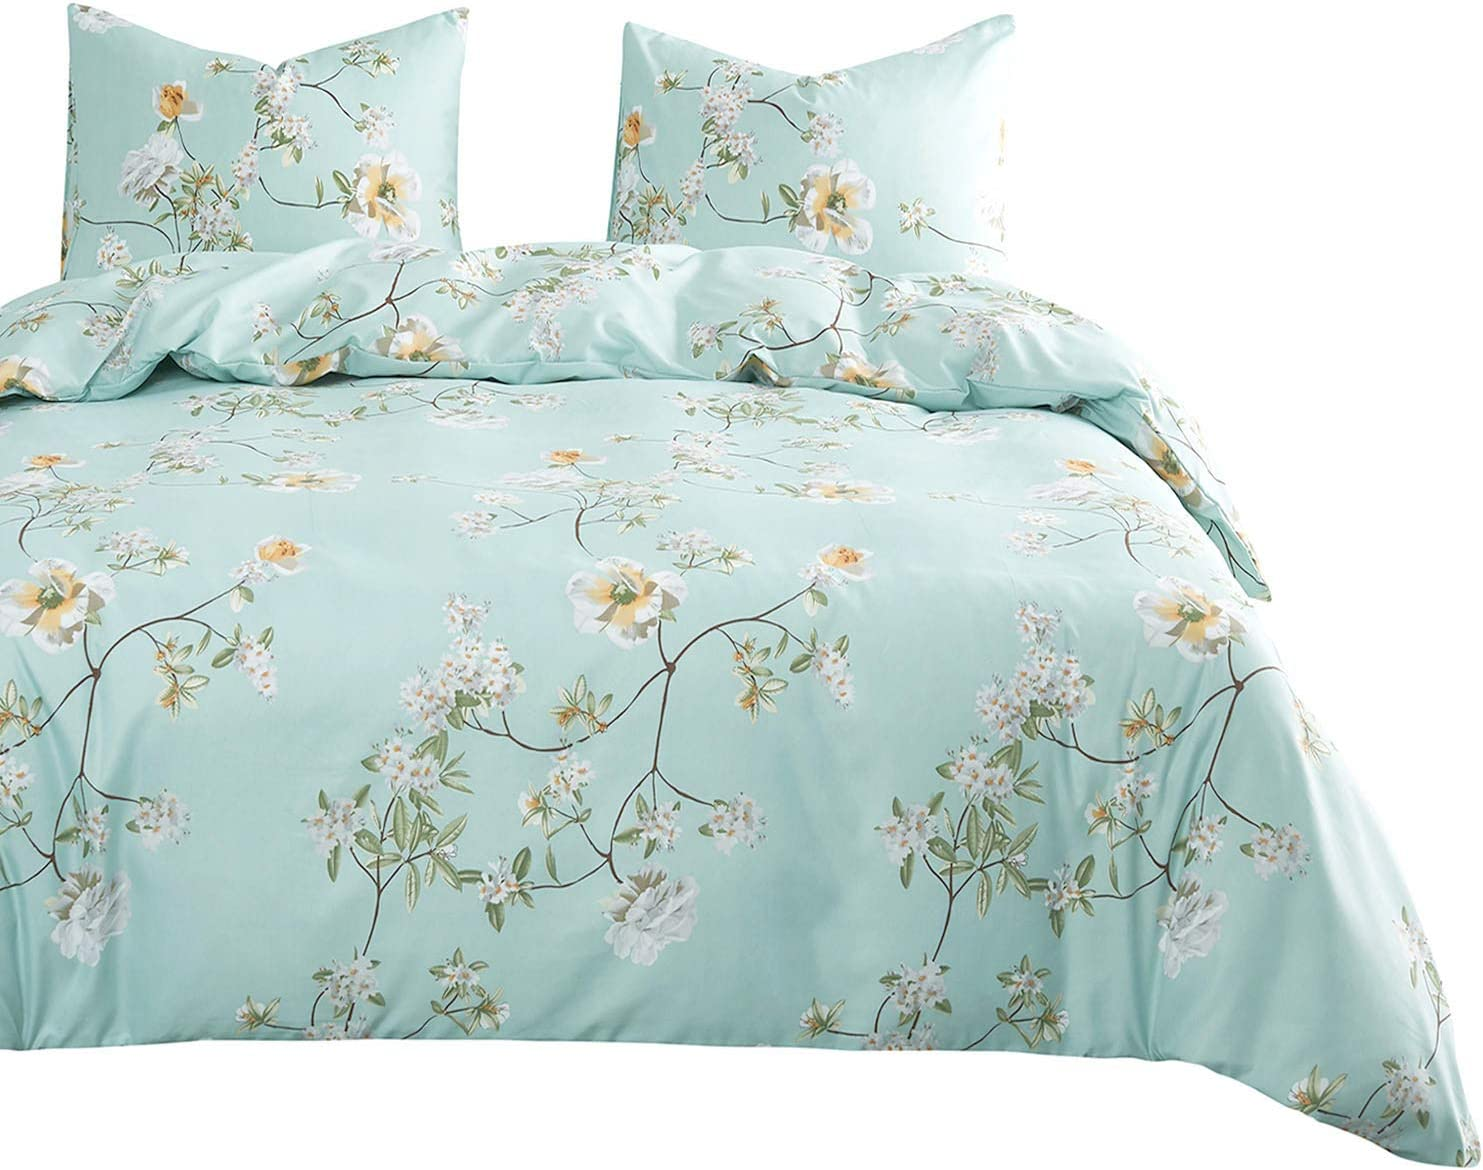 Wake In Cloud - Floral Comforter Set, White Flowers Pattern Printed on Light Blue Green, Soft Microfiber Bedding (3pcs, Queen Size)